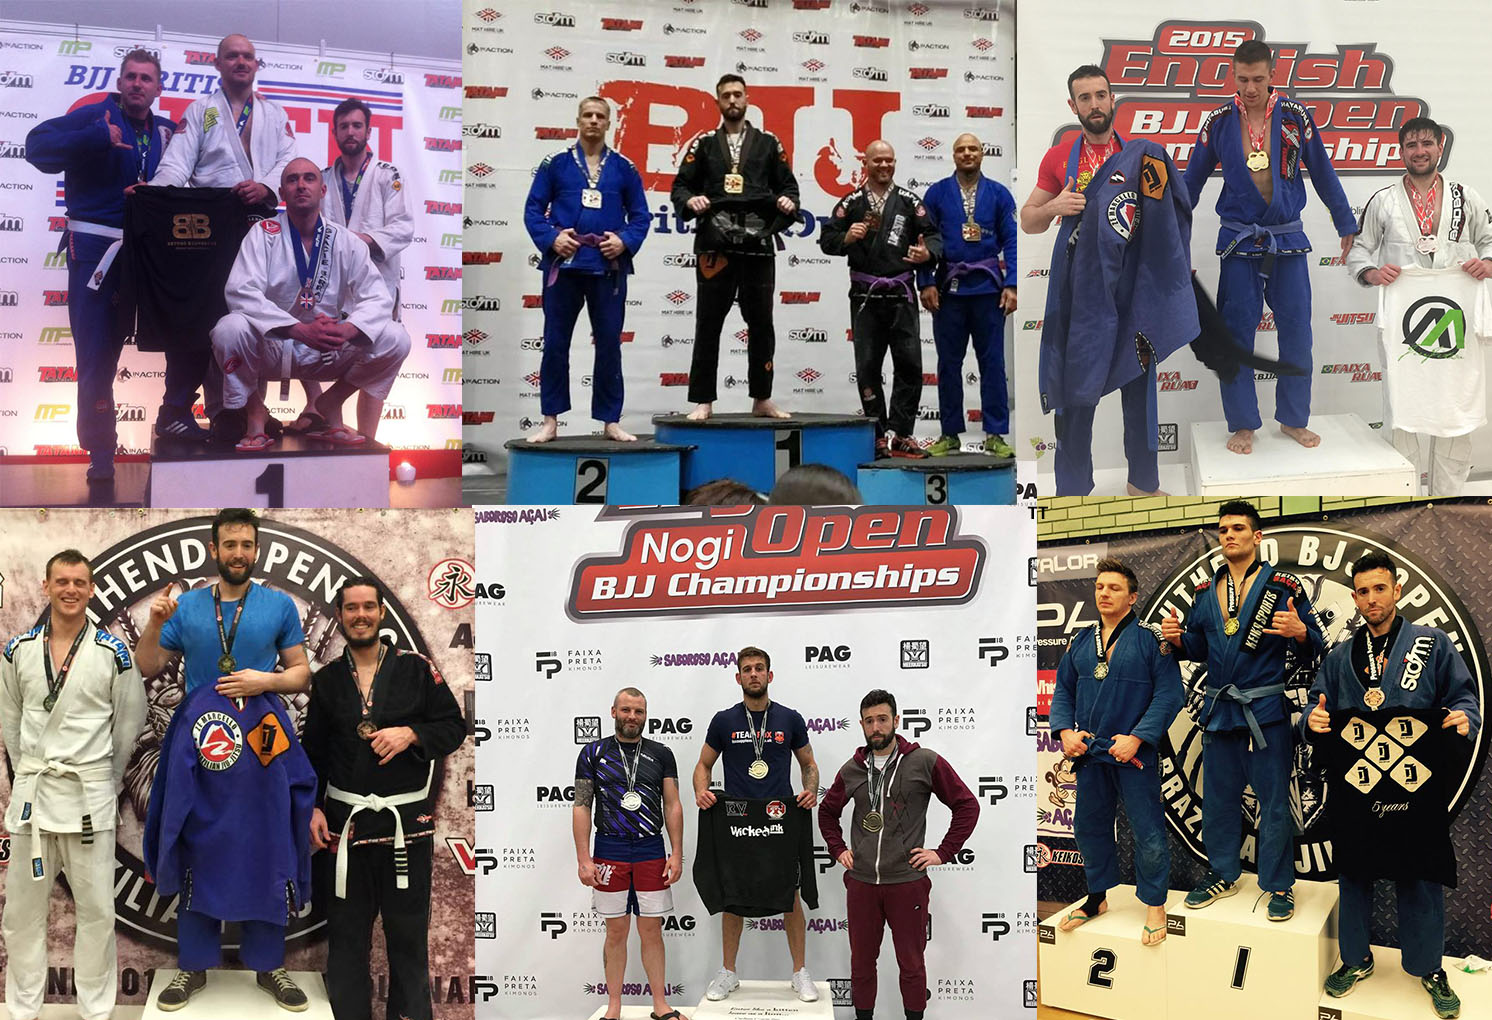 A few BJJ competitions around the country